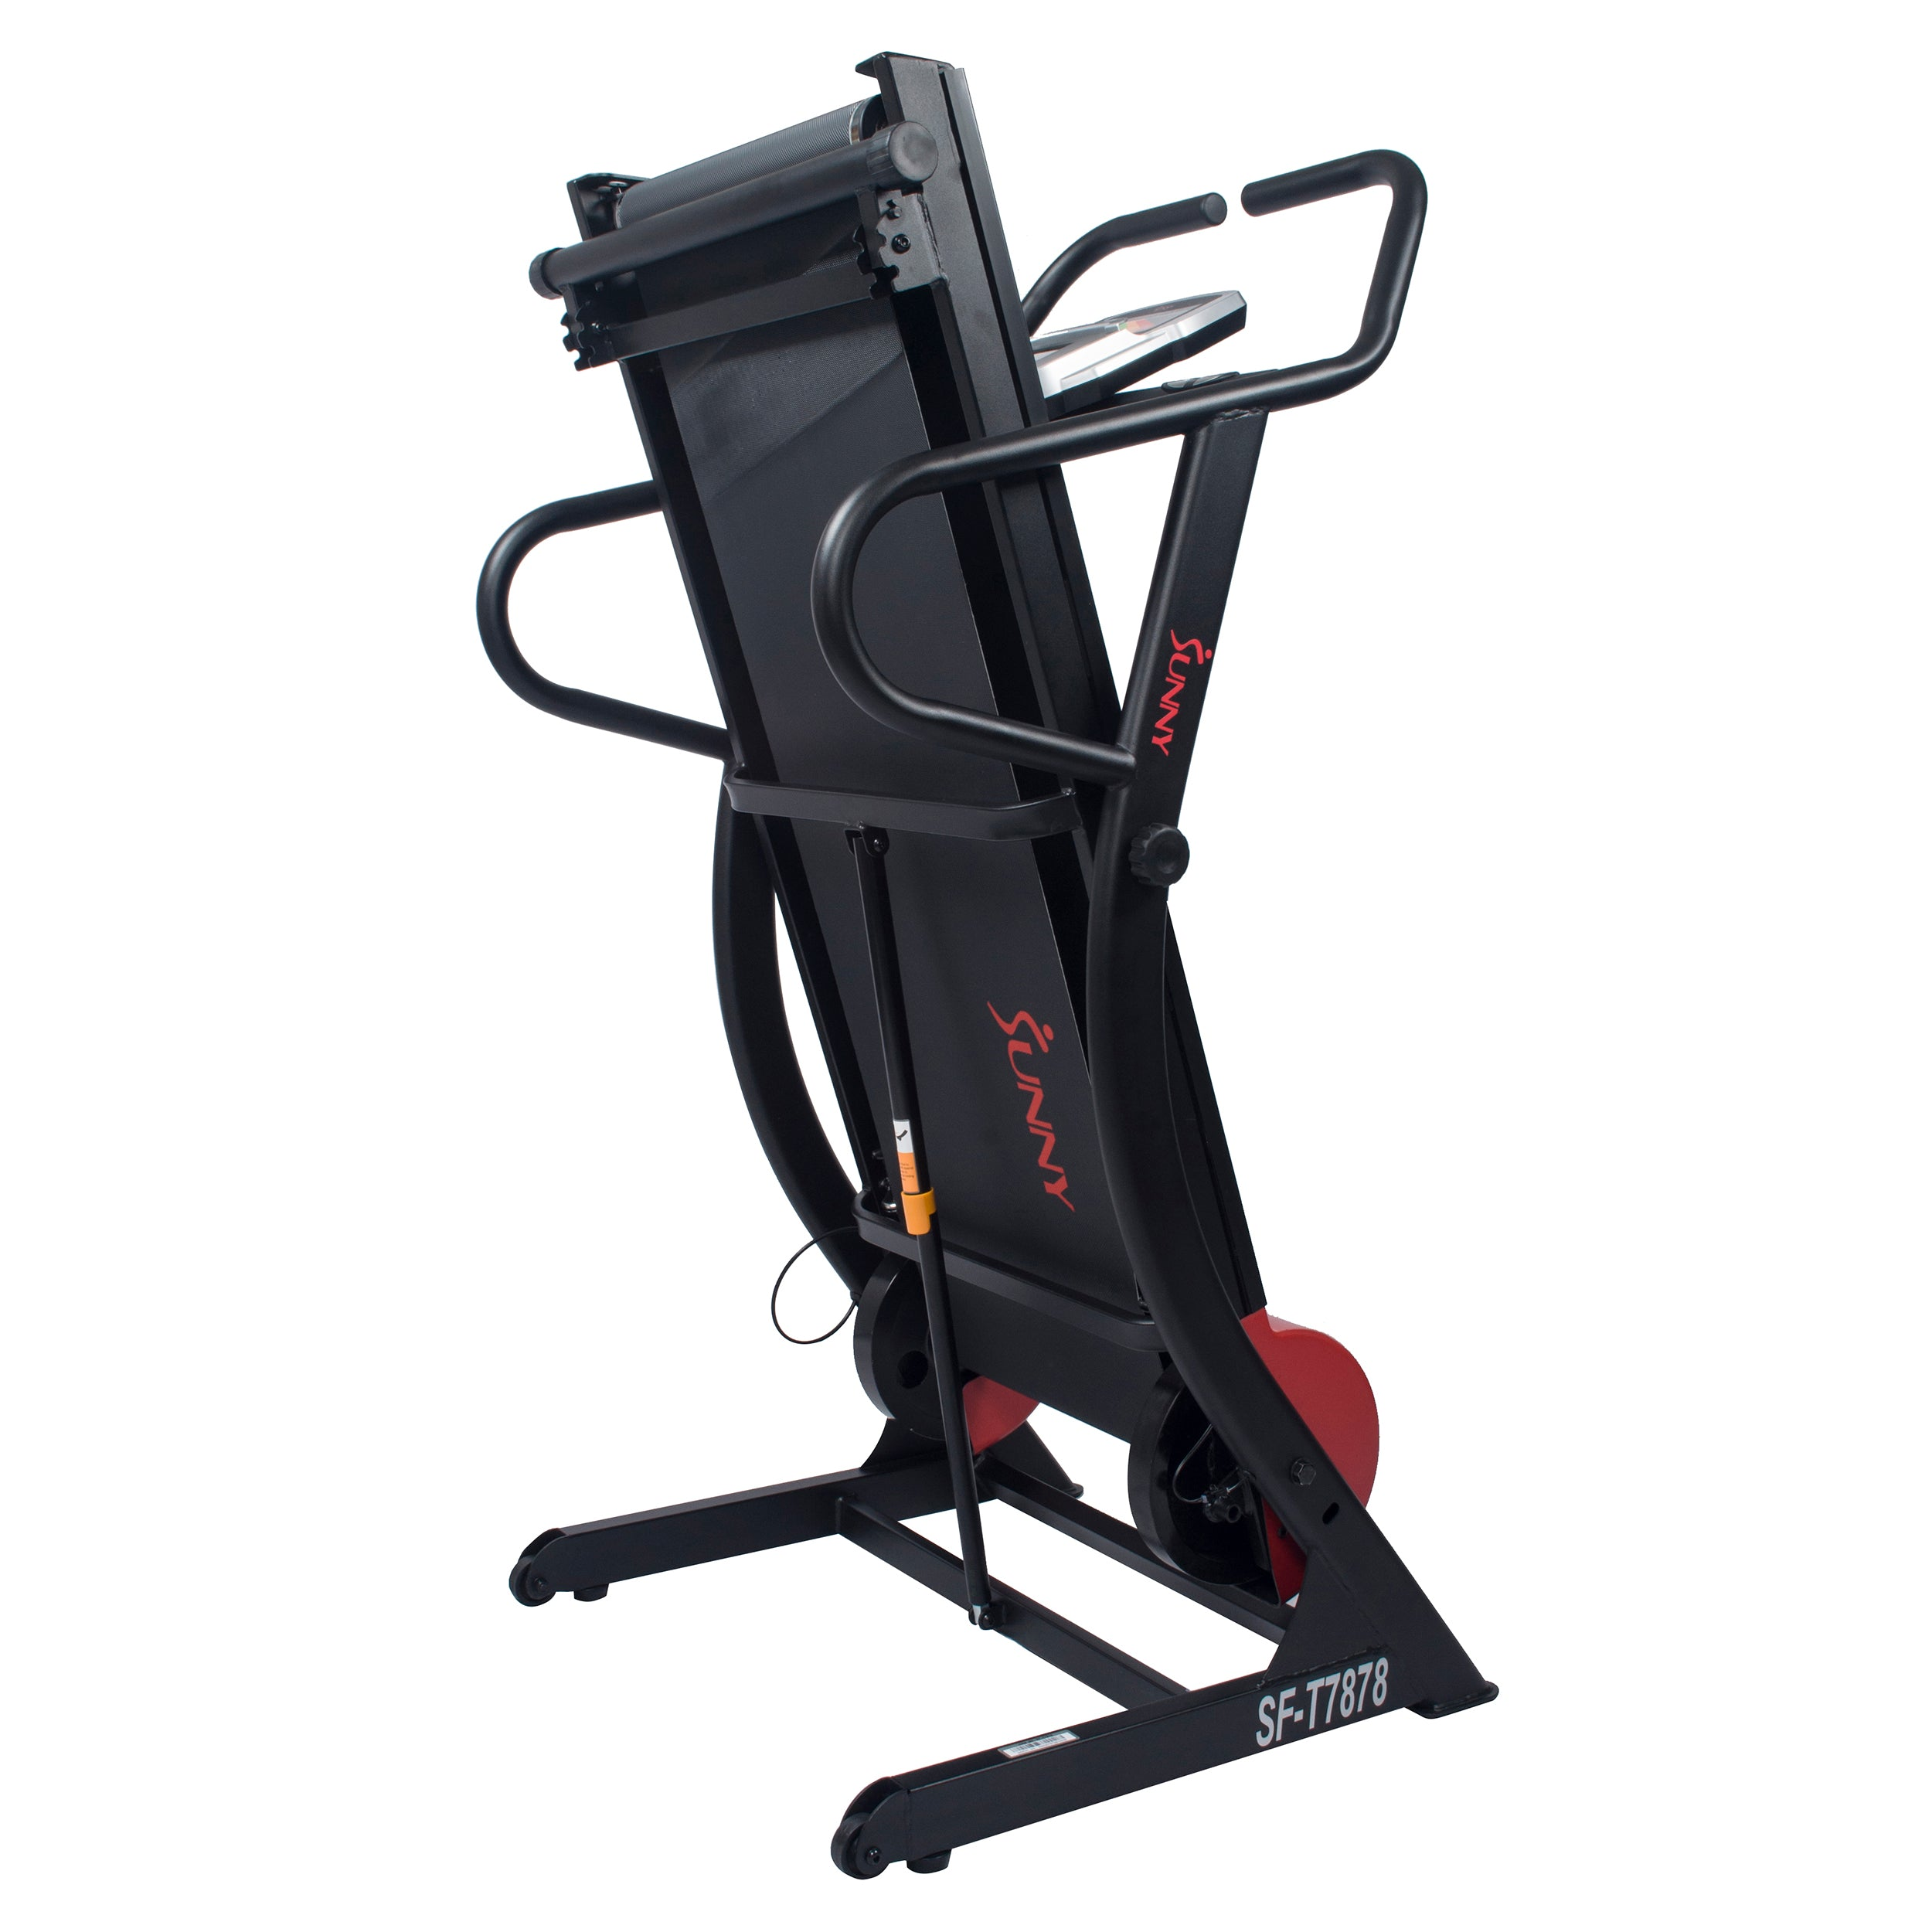 sunny-health-fitness-treadmills-sunny-health-fitness-cardio-trainer-manual-treadmill-adjustable-incline-300+-lbs-SF-T7878-foldable